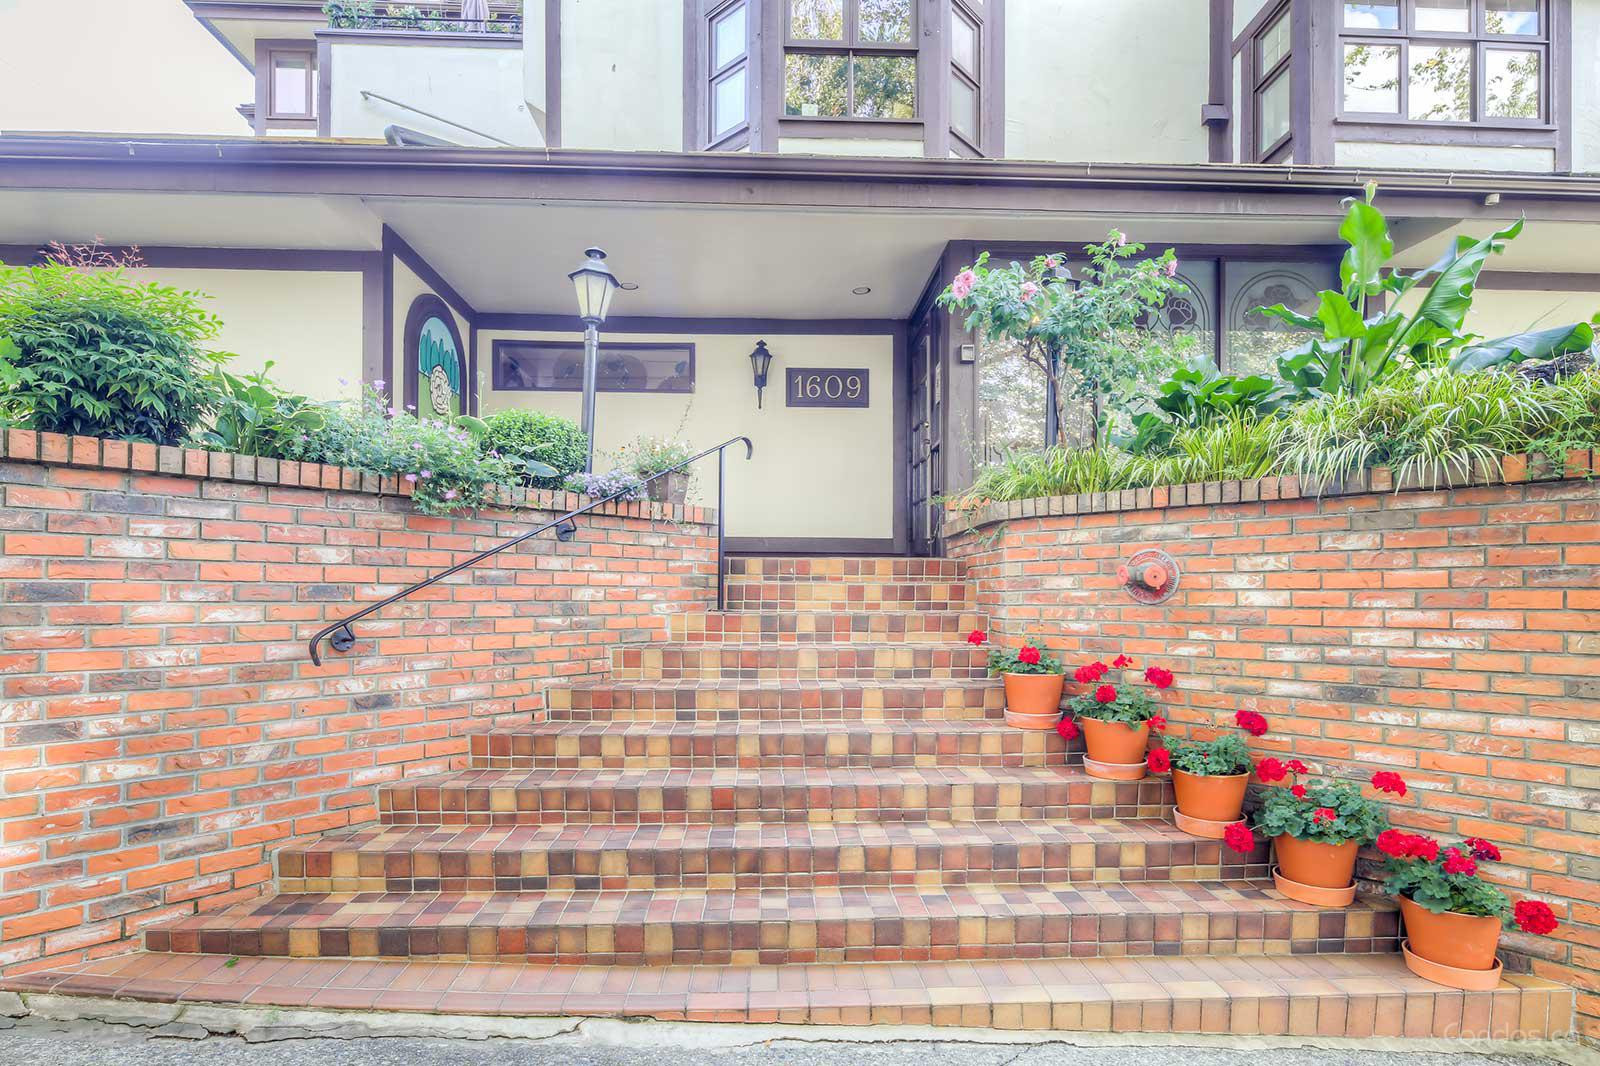 The Old York Townhomes at 1609 Balsam St, Vancouver 0